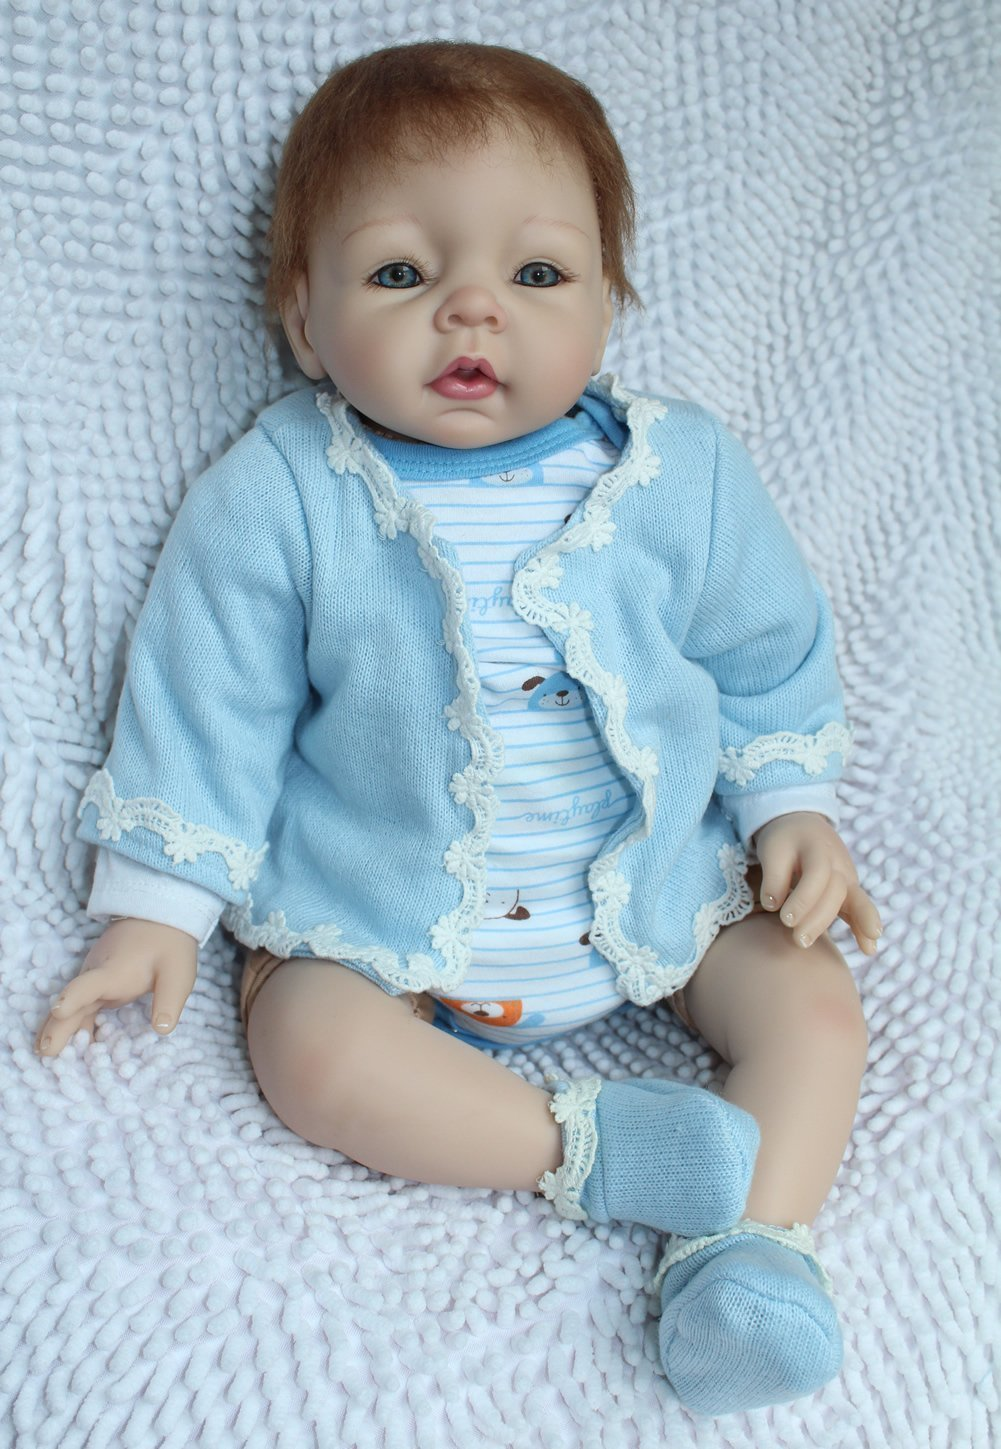 кукла USA Reborn Baby Dolls 22 hot 17inch soft silicone reborn dolls toys 45cm lifelike girl baby dolls newborn reborn doll brinquedos for birthday gift